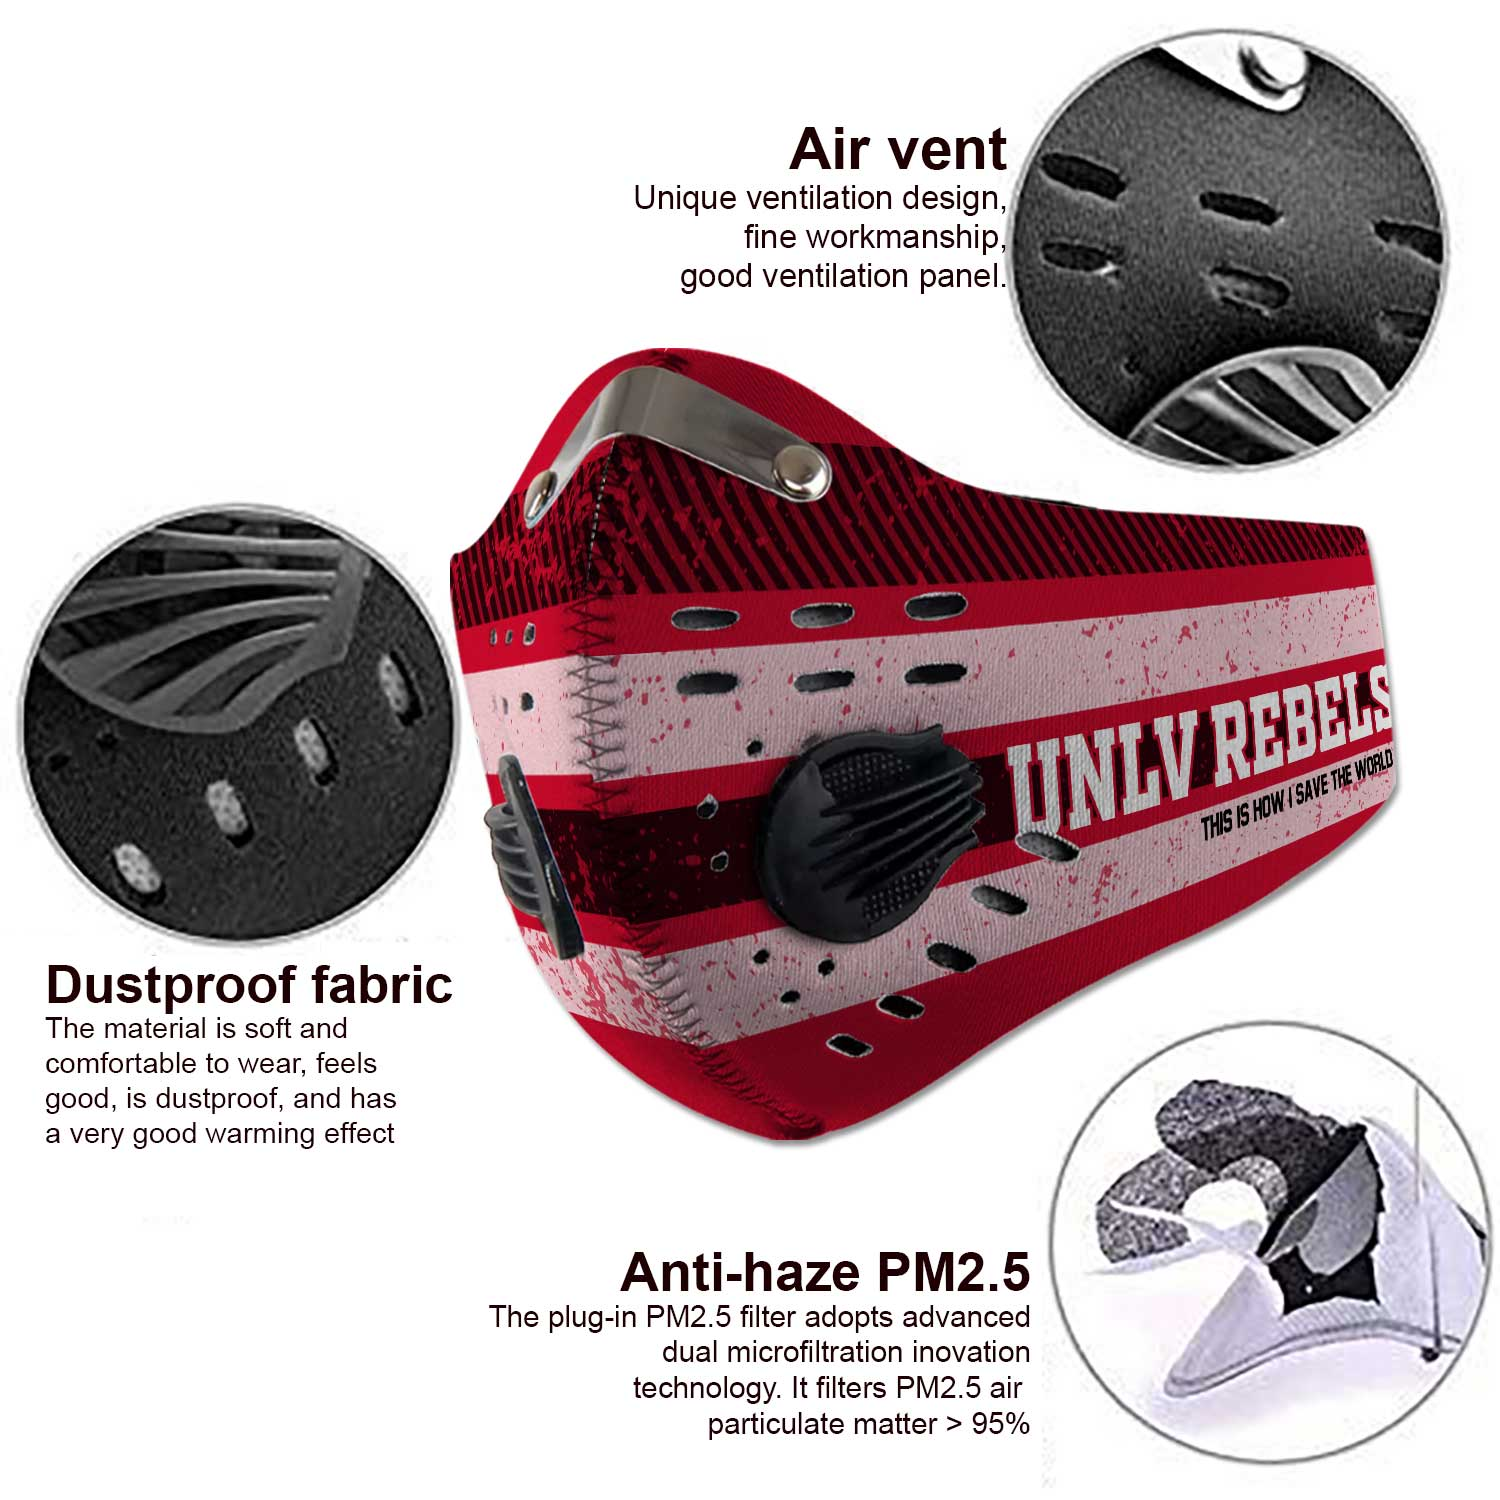 UNLV rebels this is how i save the world carbon filter face mask 4